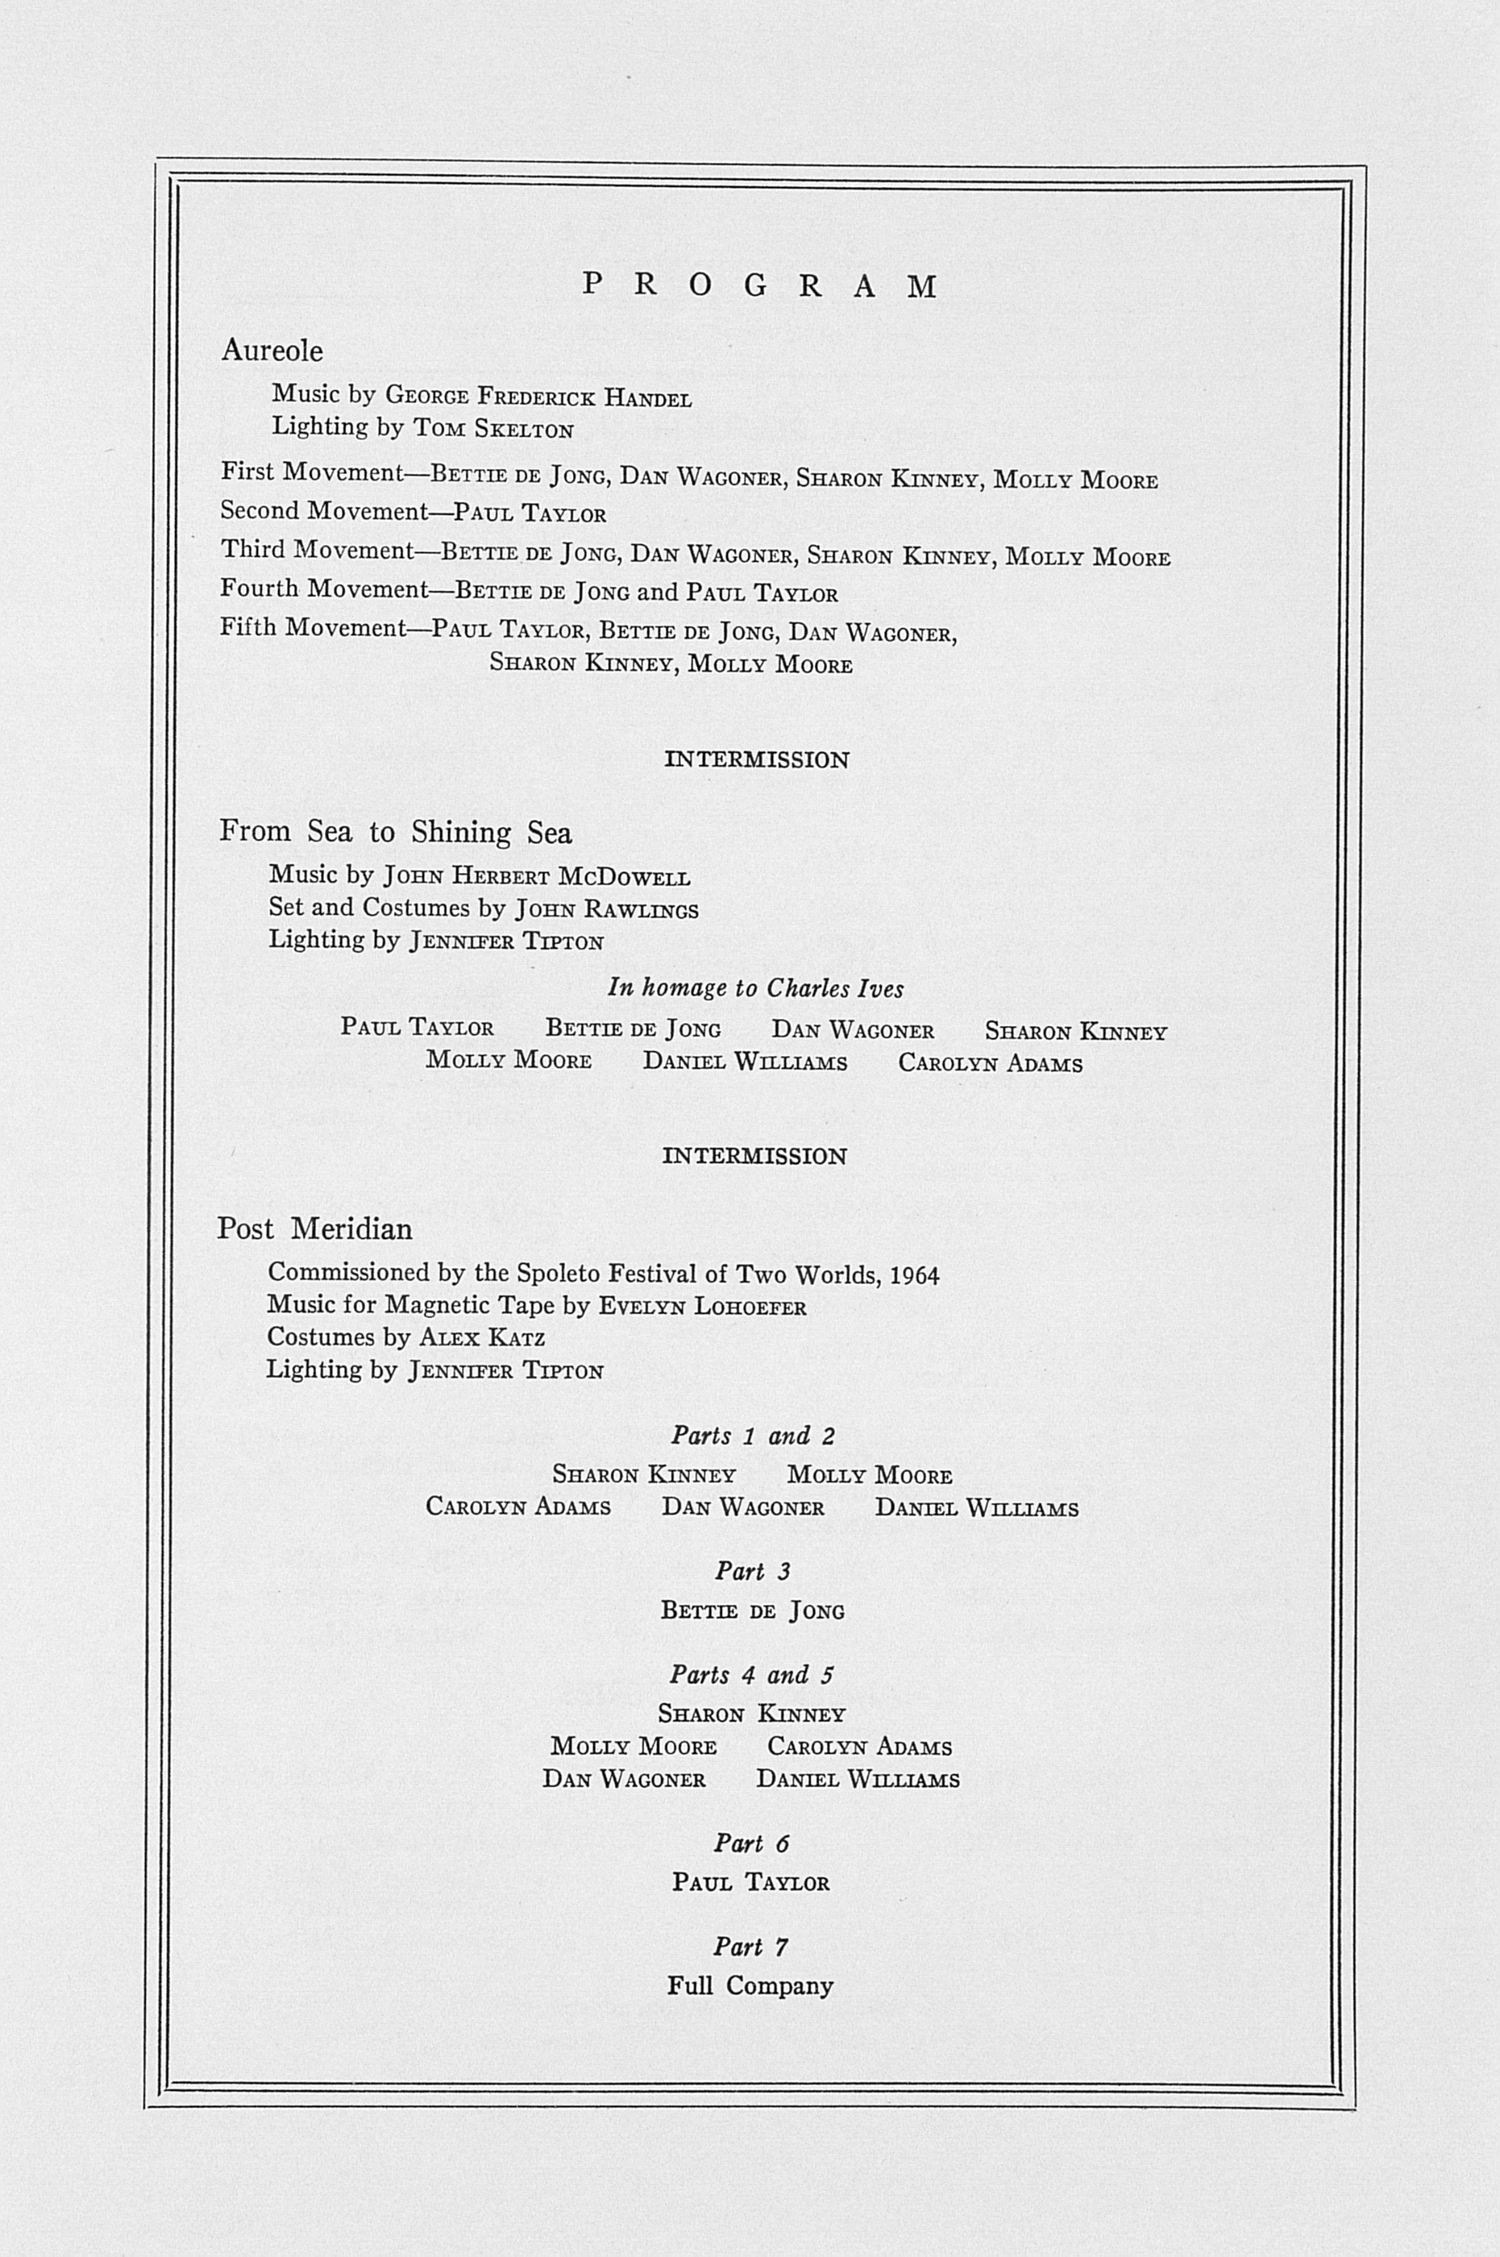 UMS Concert Program, October 22, 23, 24, 1965: Chamber Dance Festival --  image